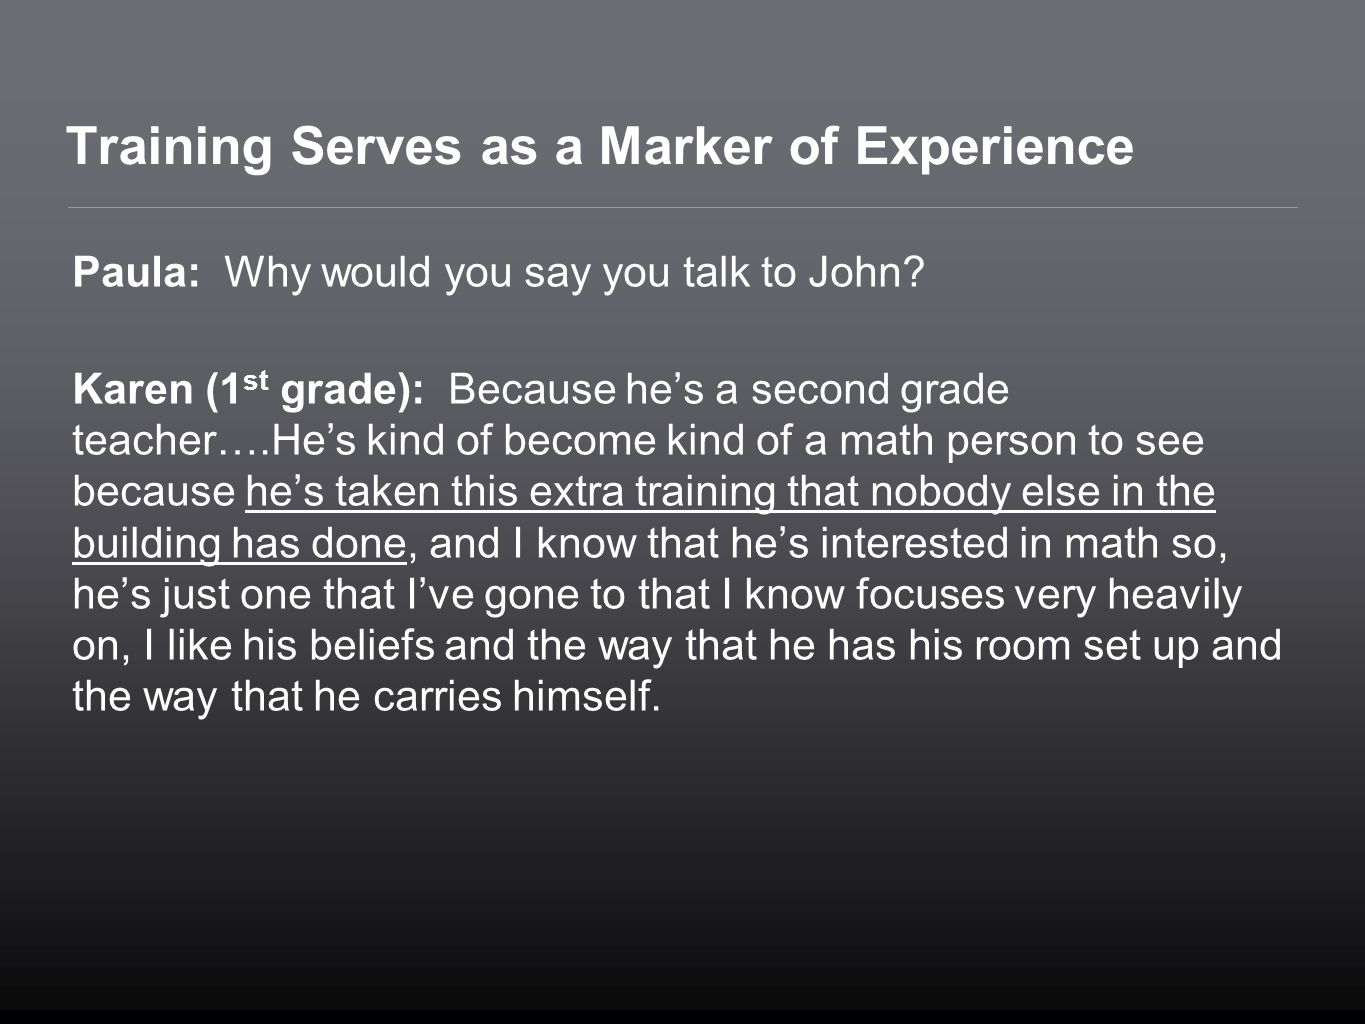 Training Serves as a Marker of Experience